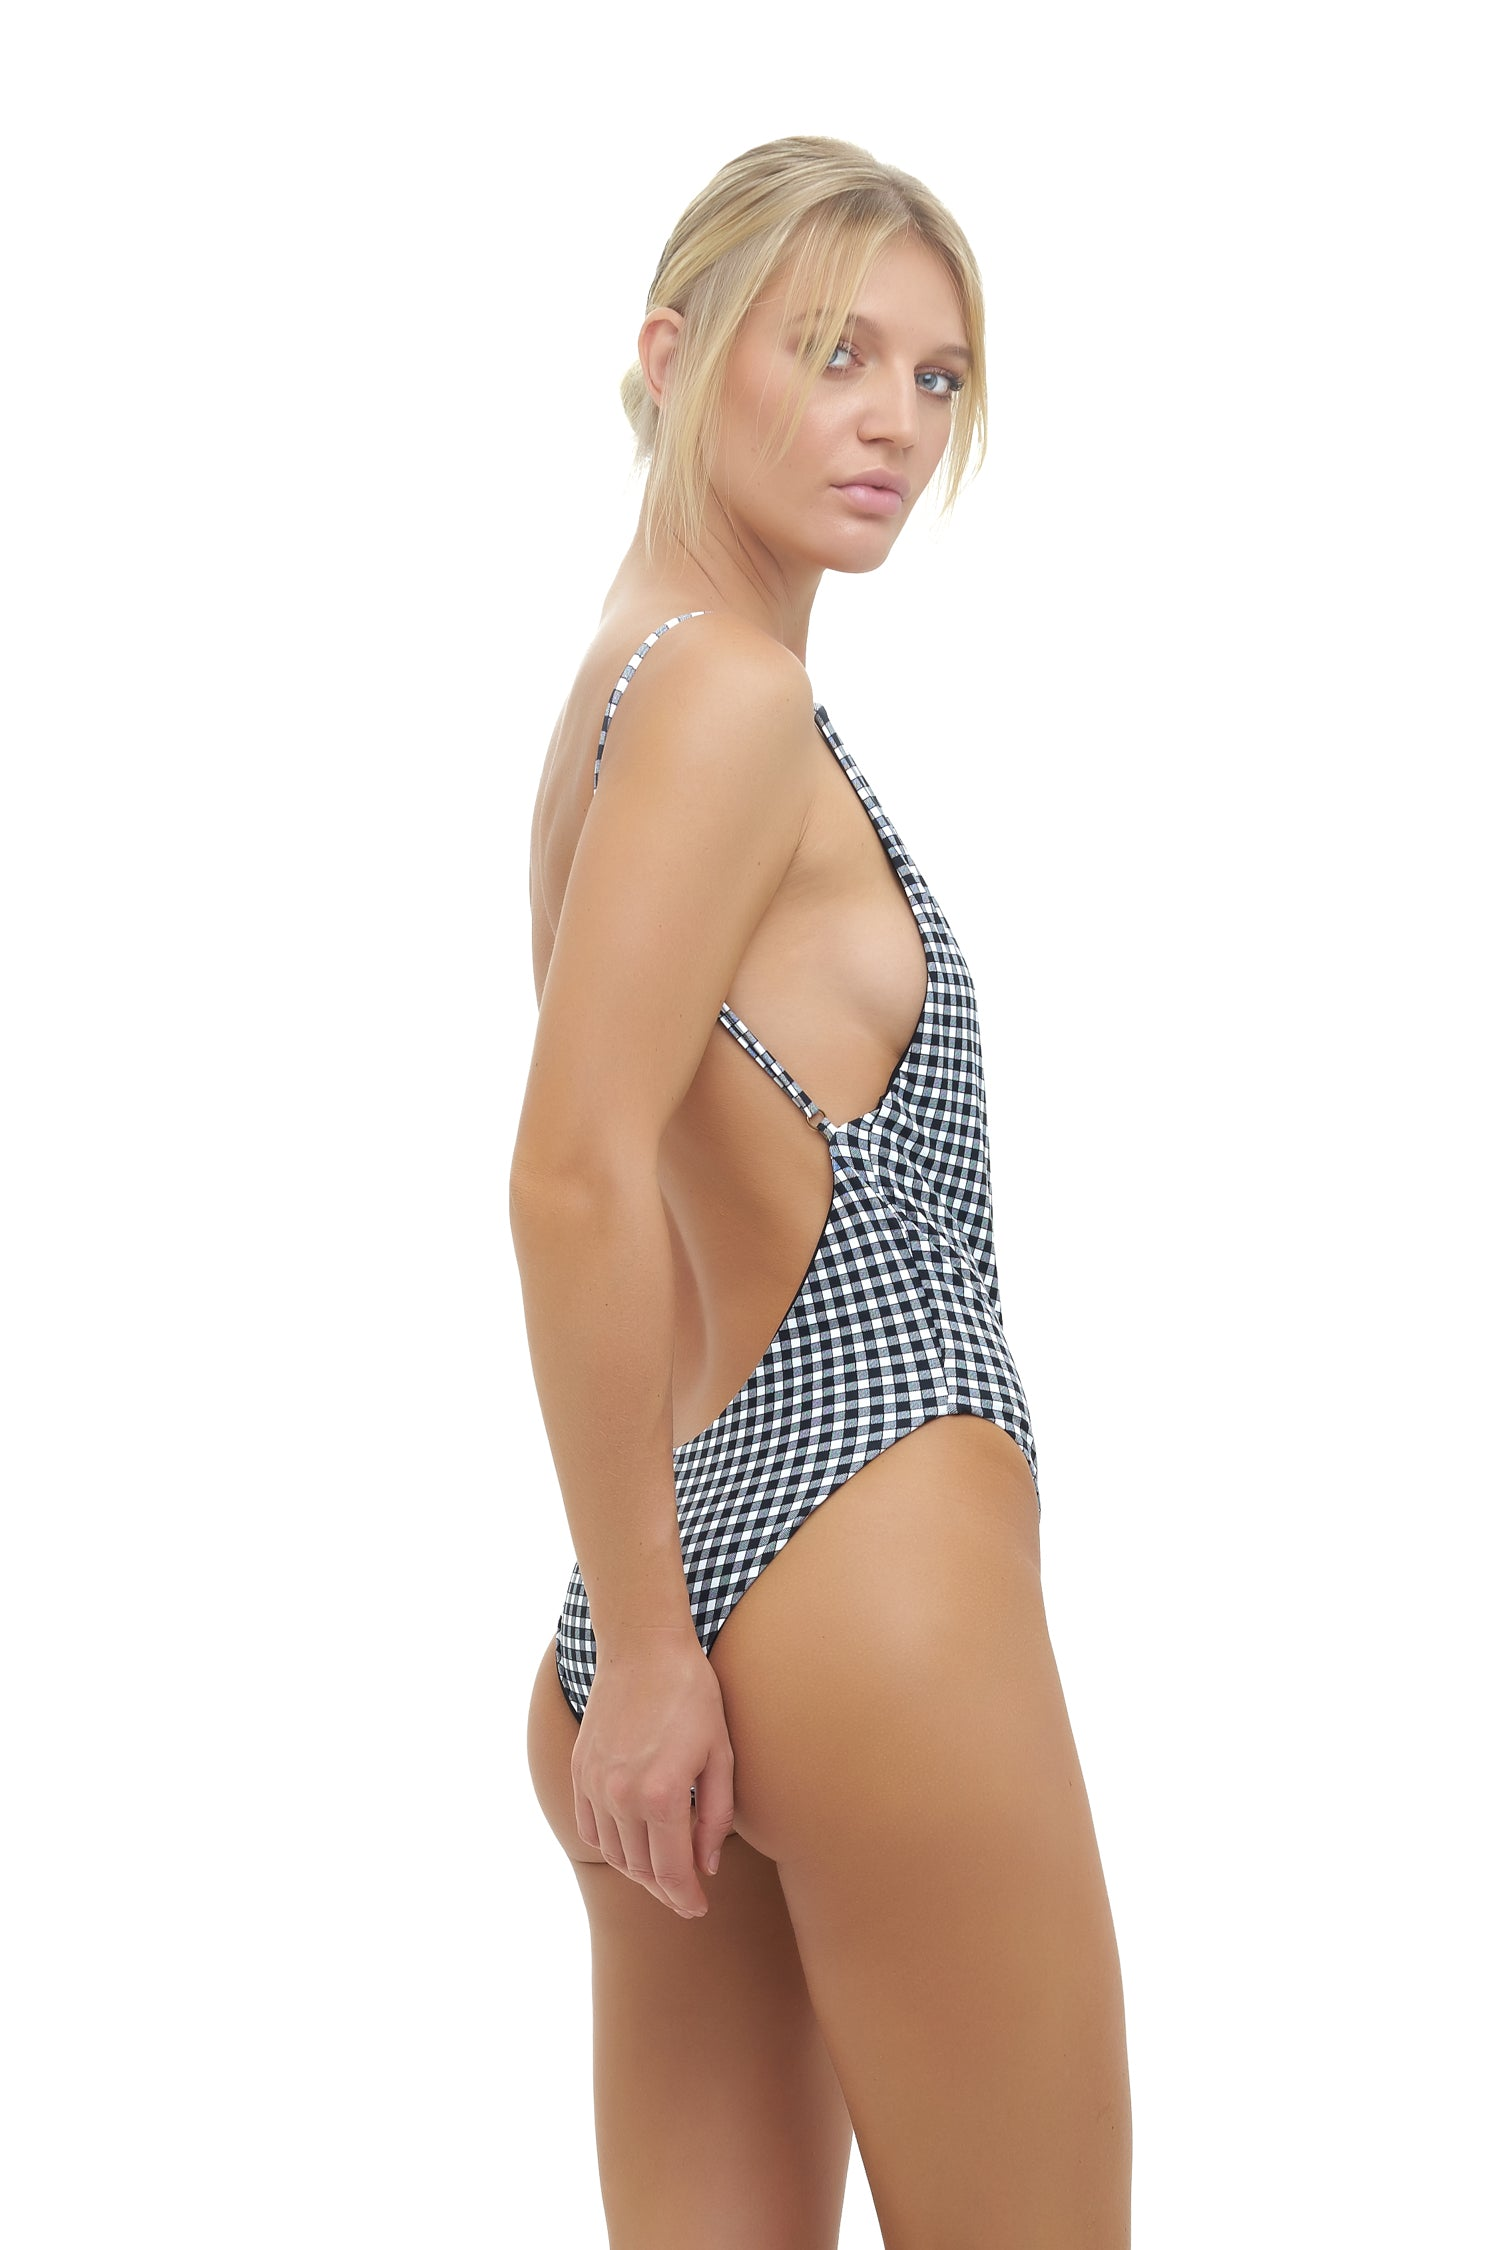 Storm Swimwear - Byron Bay - One Piece Swimsuit in Gingham Black and White Check